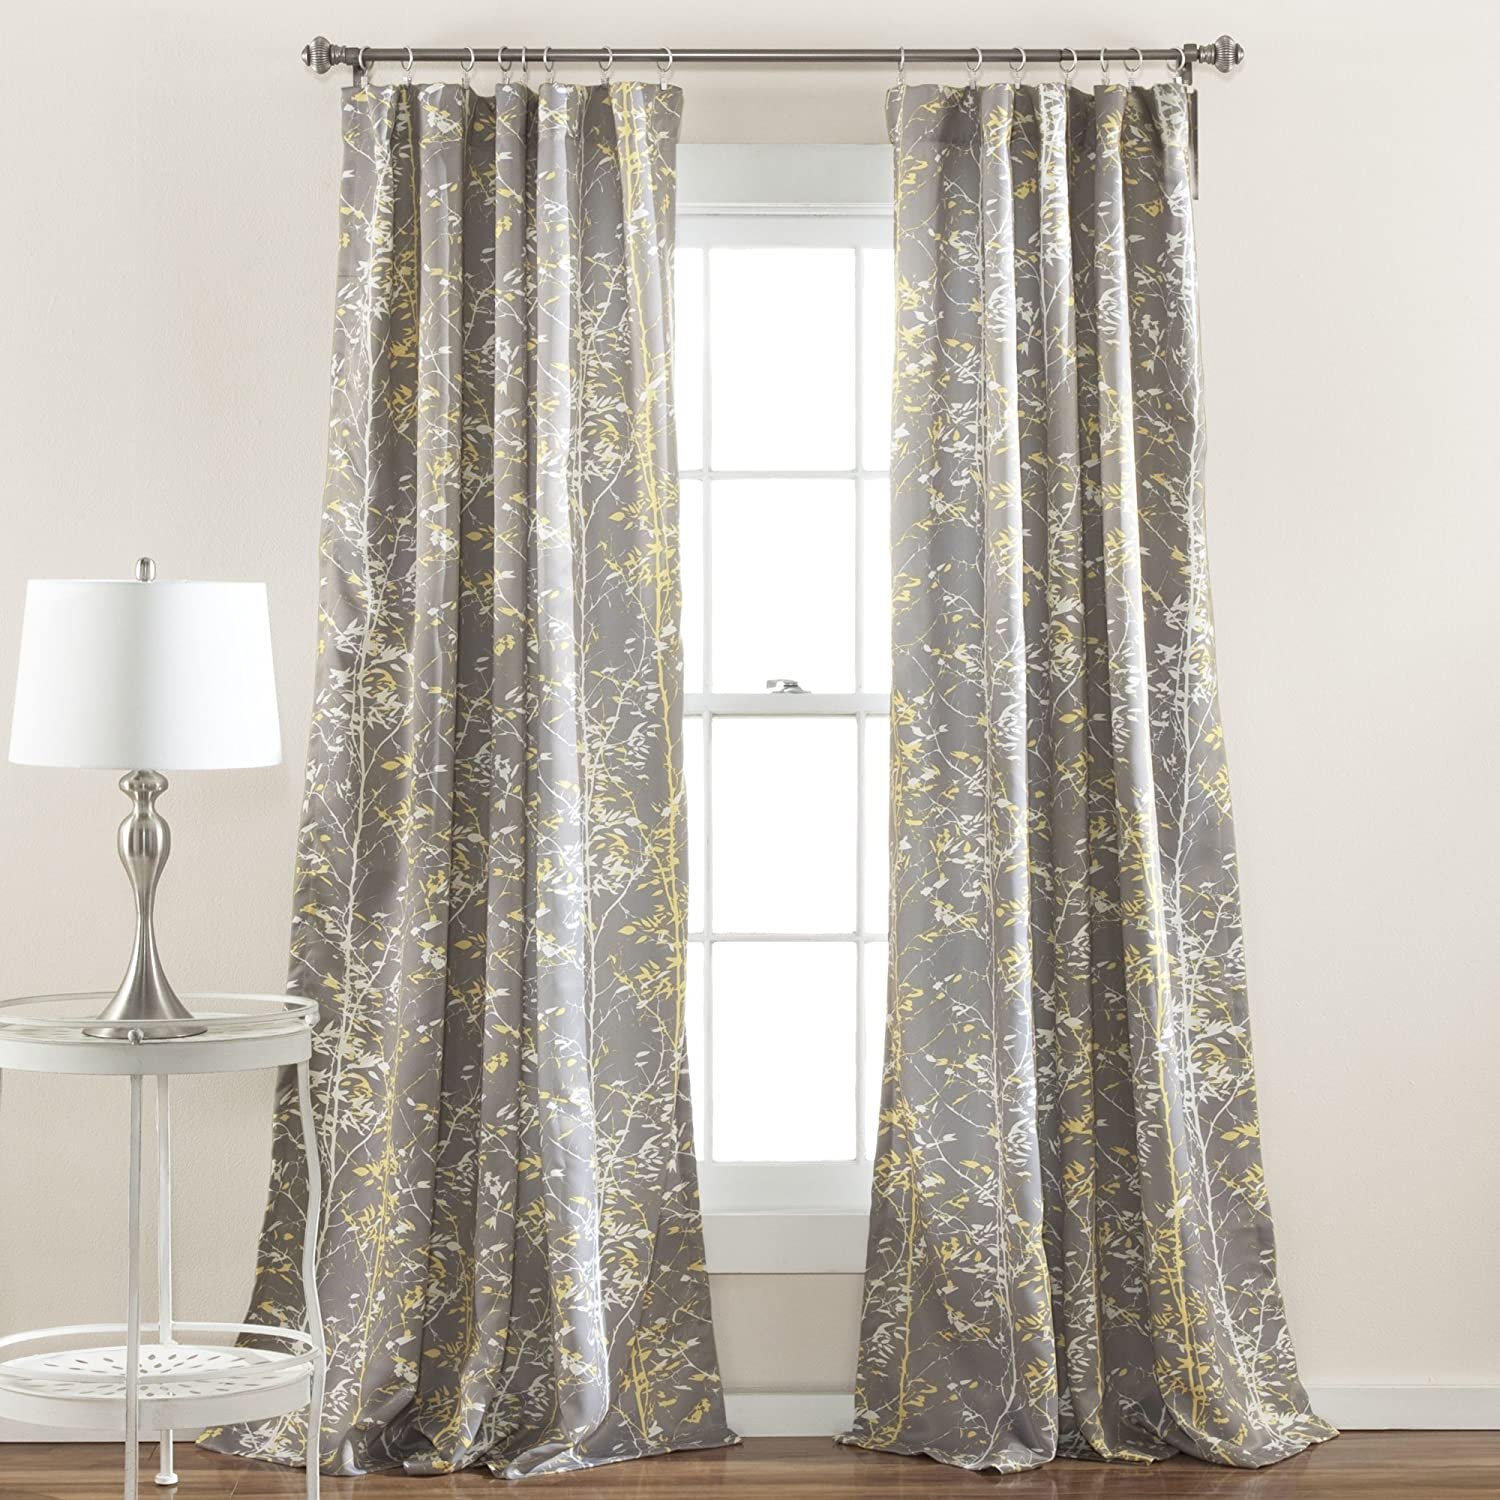 Lush Decor Forest Window Curtain Panel Gray/Yellow